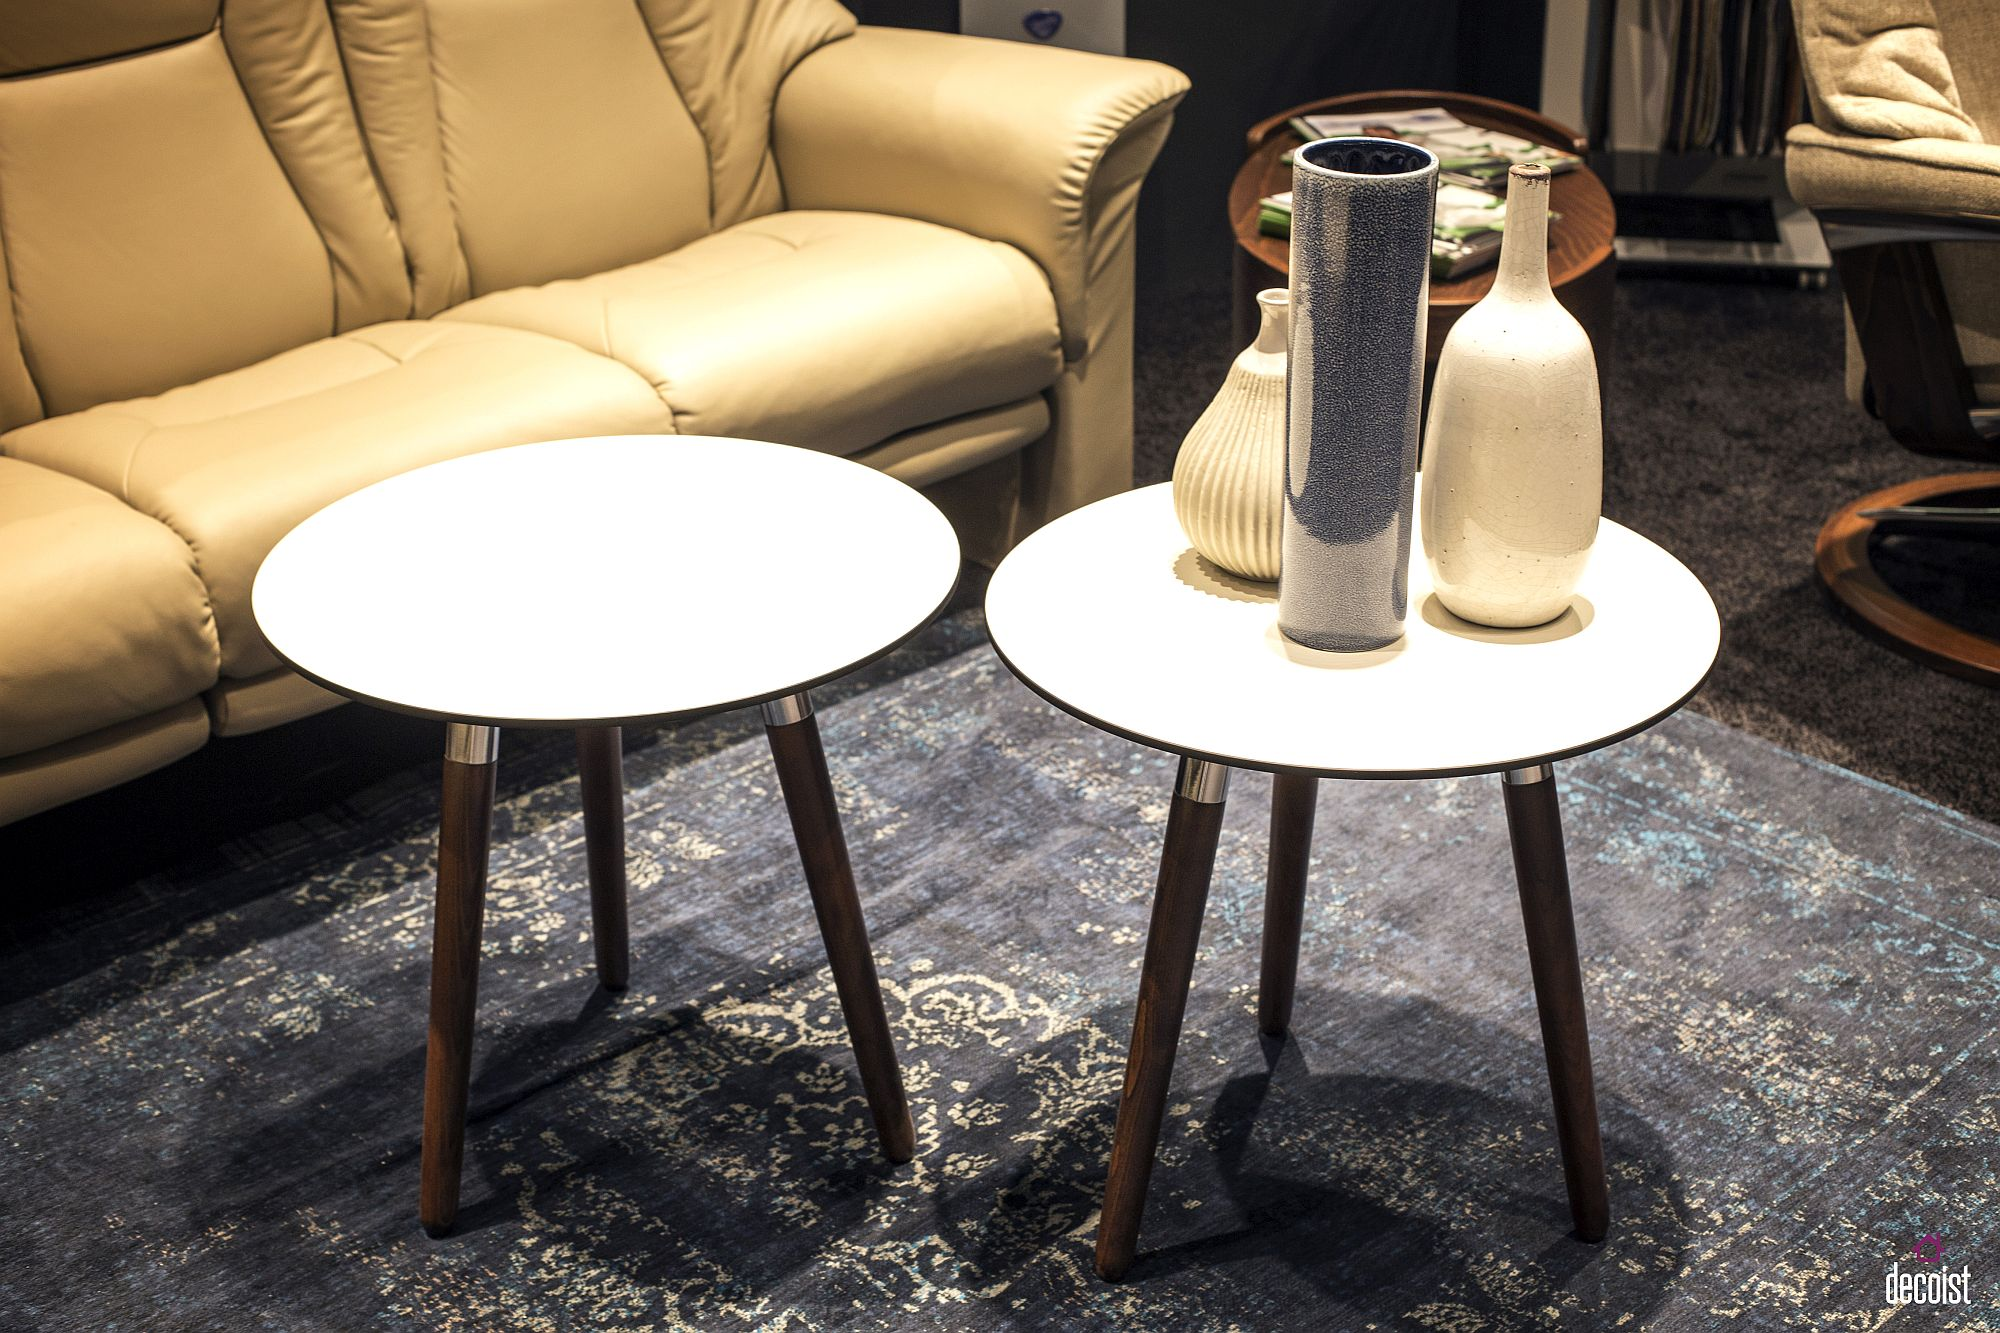 Unassuming end tables can be combined to create a cool coffee table